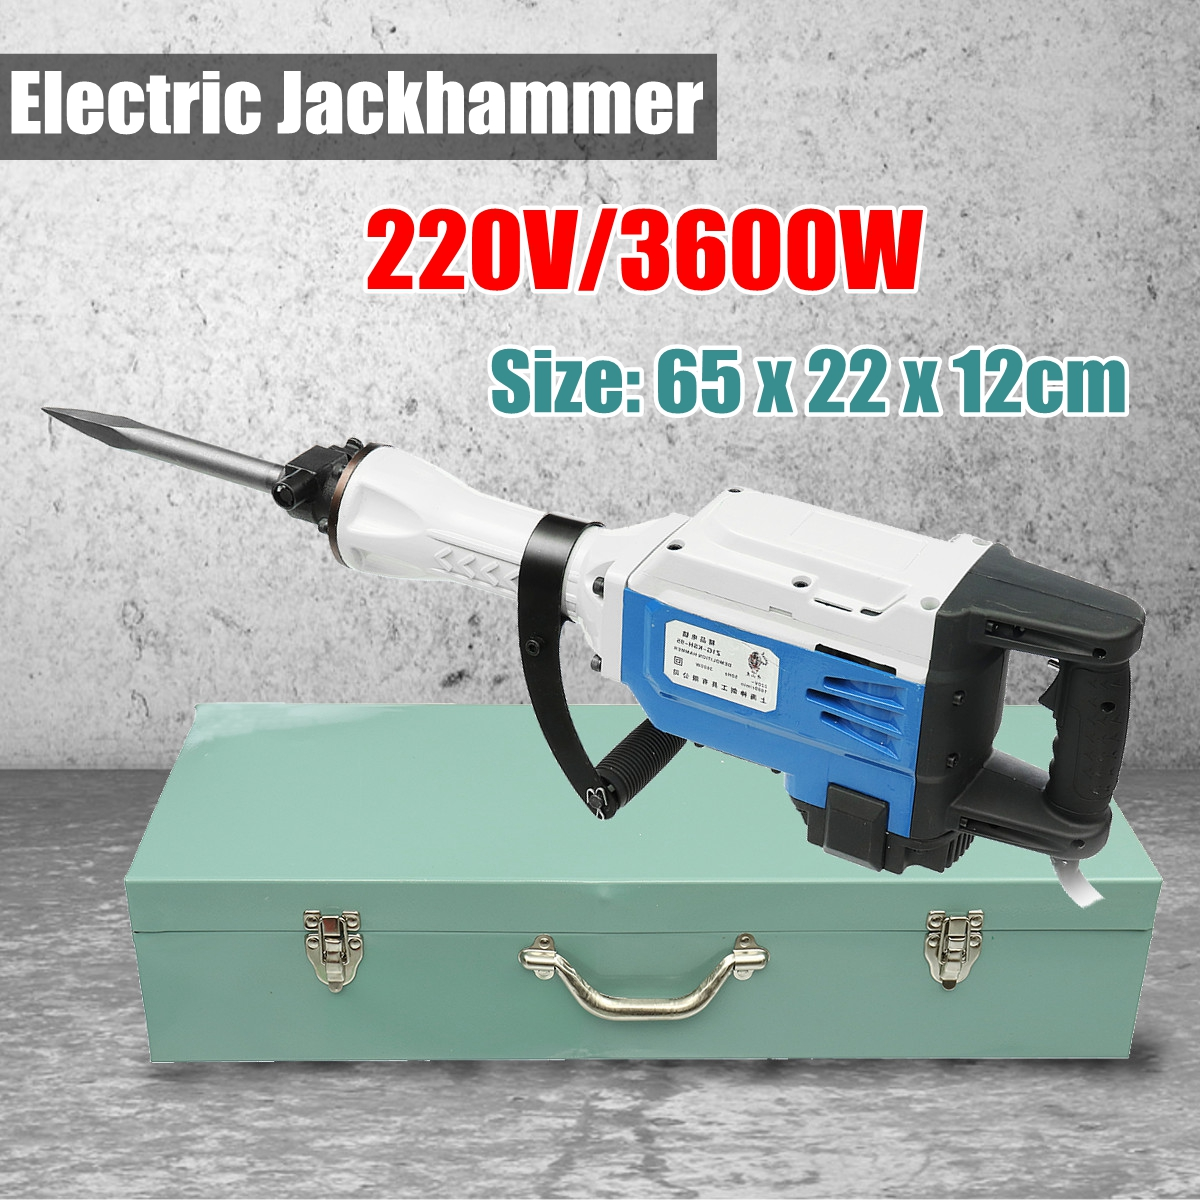 220V 3600W Electric Commercial Jackhammer Demolition Jack Hammer Tool free ship by spsr dps 650mb a 446635 001 457626 001 pc power supply dl160 g5 650w 1u 650w computer server mining power supply